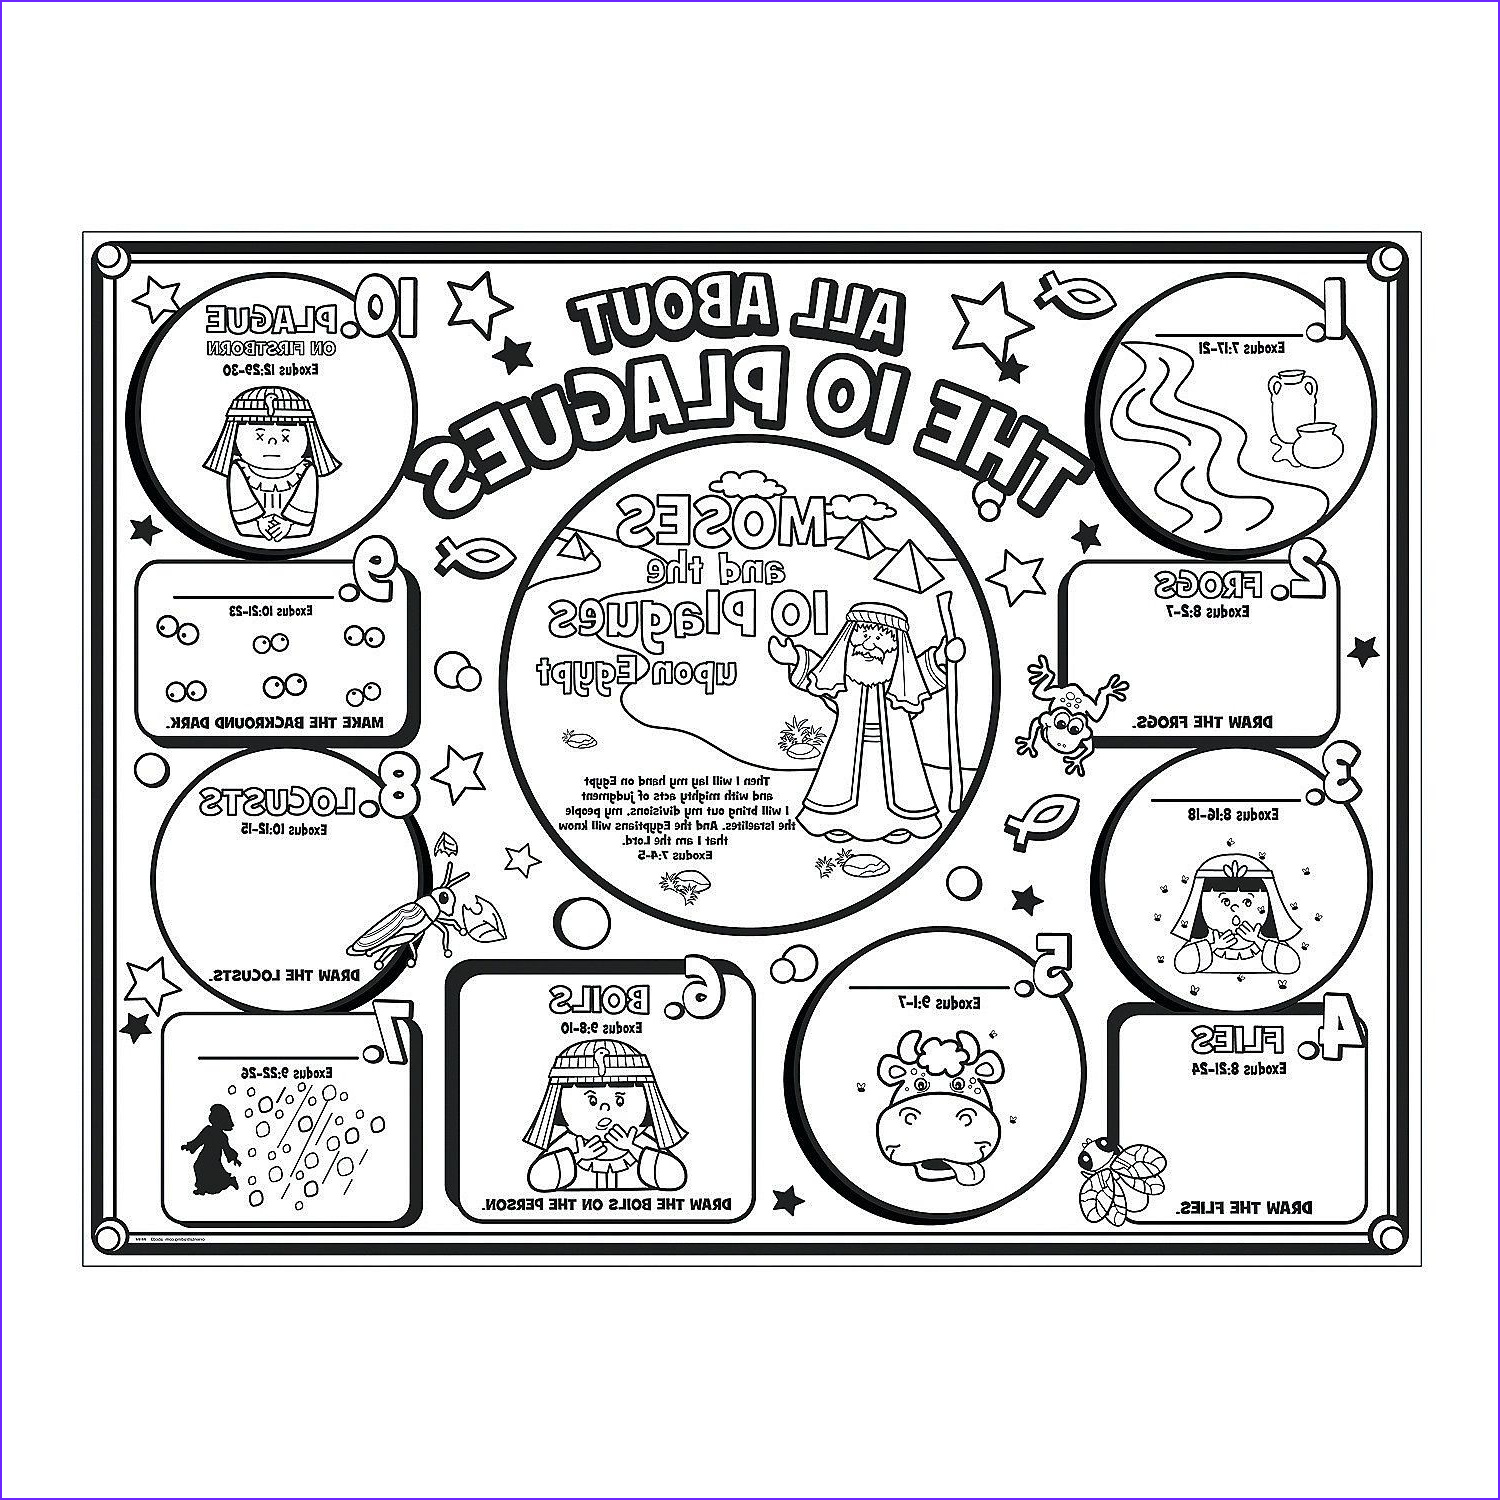 10 Plagues Of Egypt Coloring Pages Awesome Gallery Plagues Coloring Page